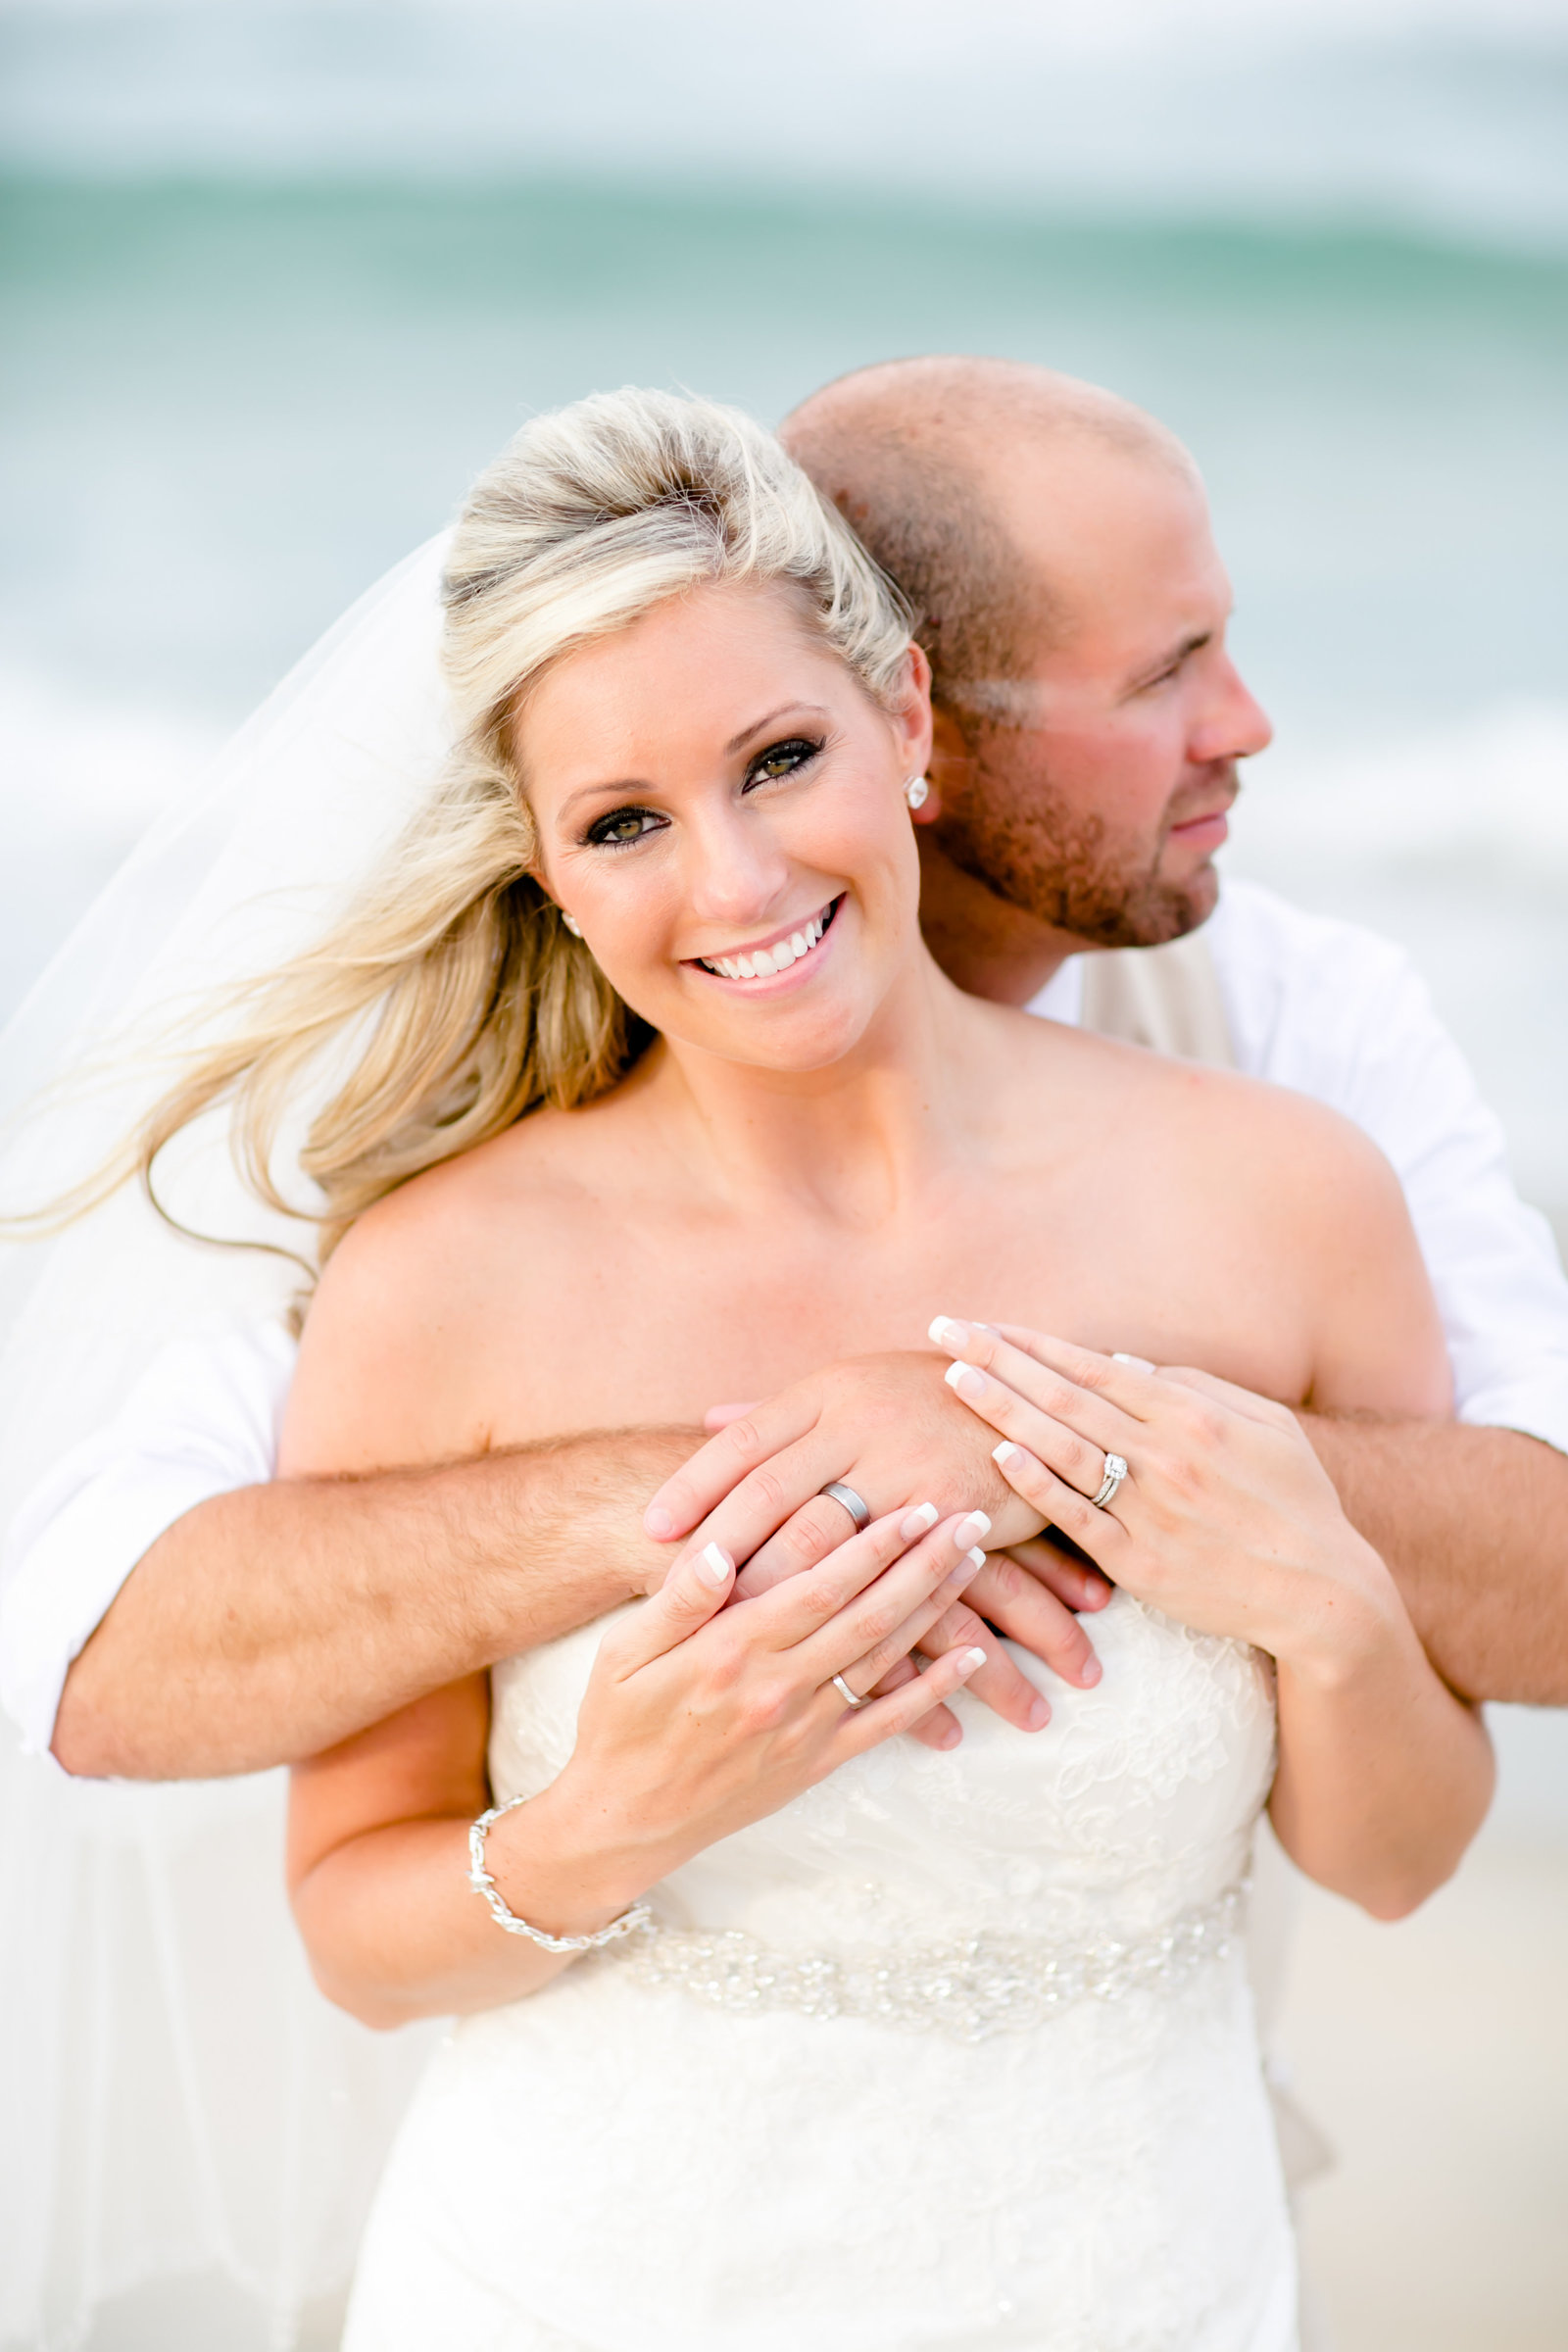 Carley Rehberg Photography - Wedding Photographer - Photo25